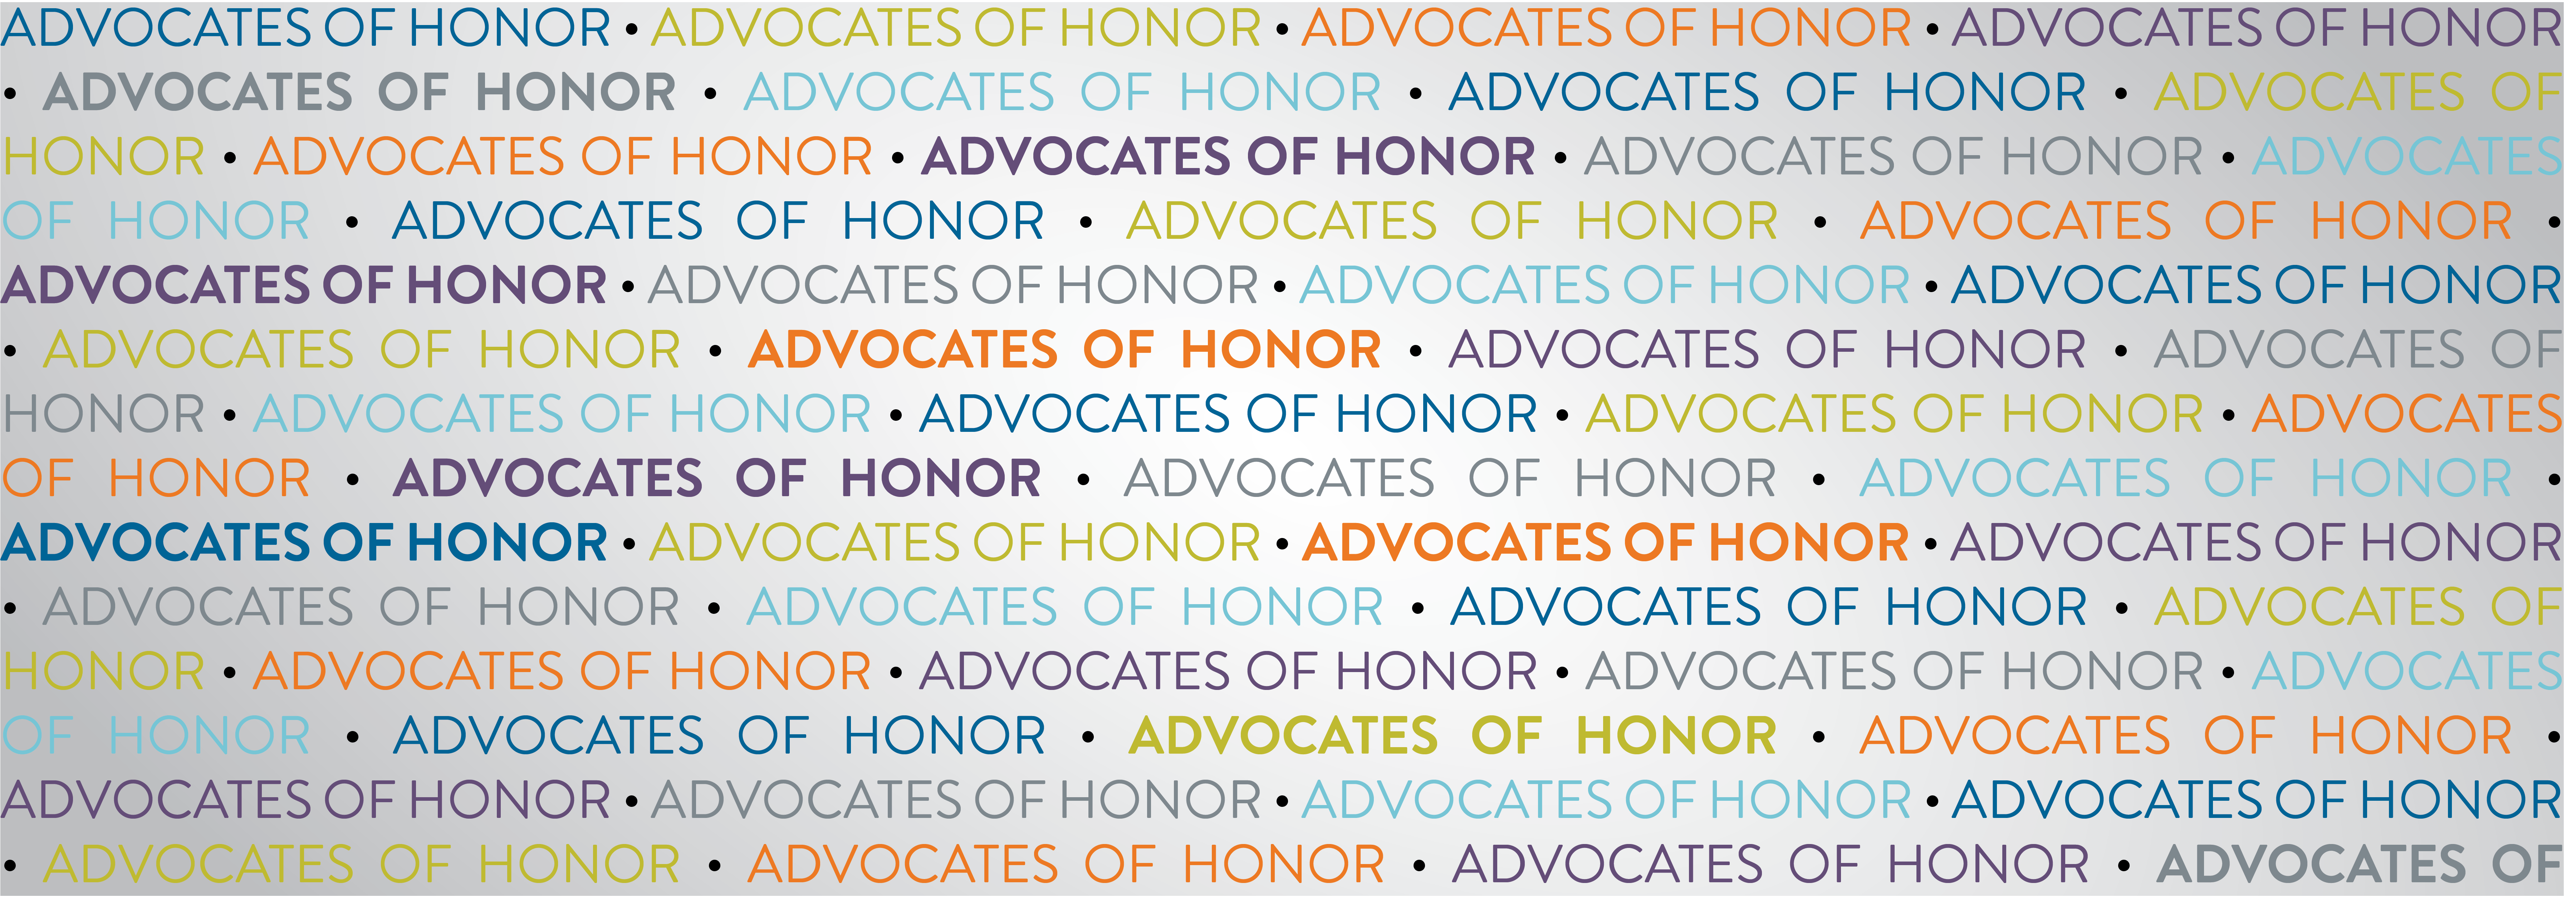 Graphic with words Advocates of Honor in multiple colors